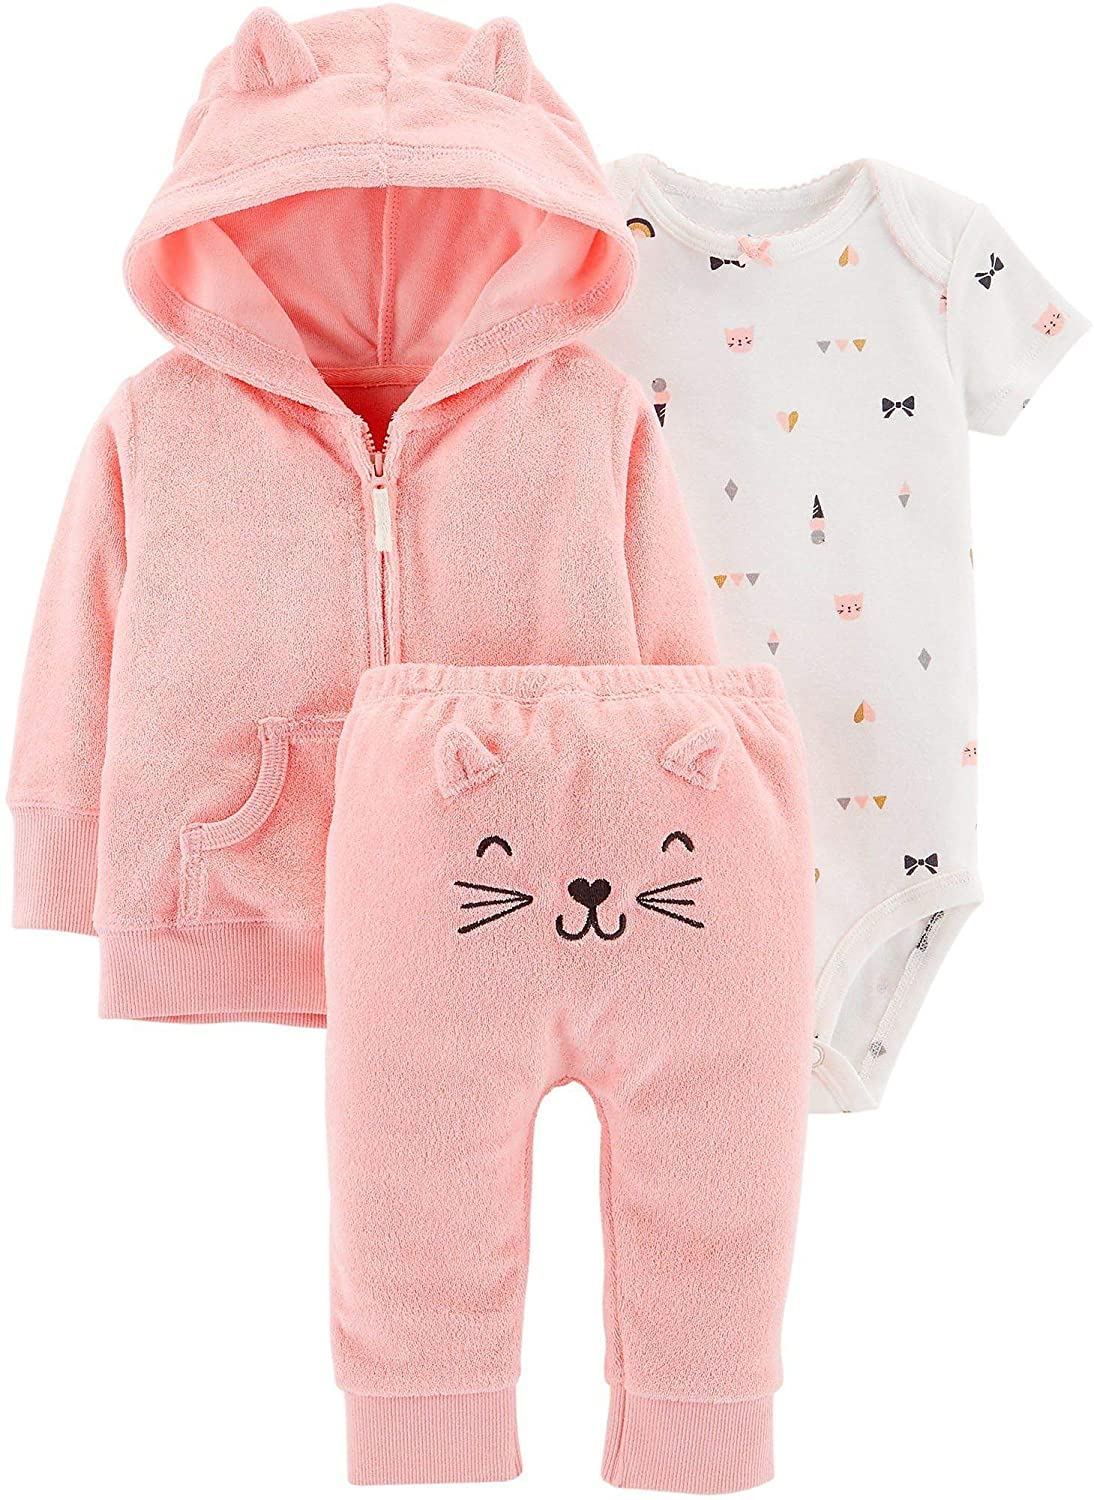 Carter's Pink/Embroidered PANTS ベビーガールズ B07GD666YJ B07GD666YJ Pants Pink/Embroidered Pants Newborn Newborn|Pink/Embroidered Pants, 久山町:40b9bd10 --- itxassou.fr